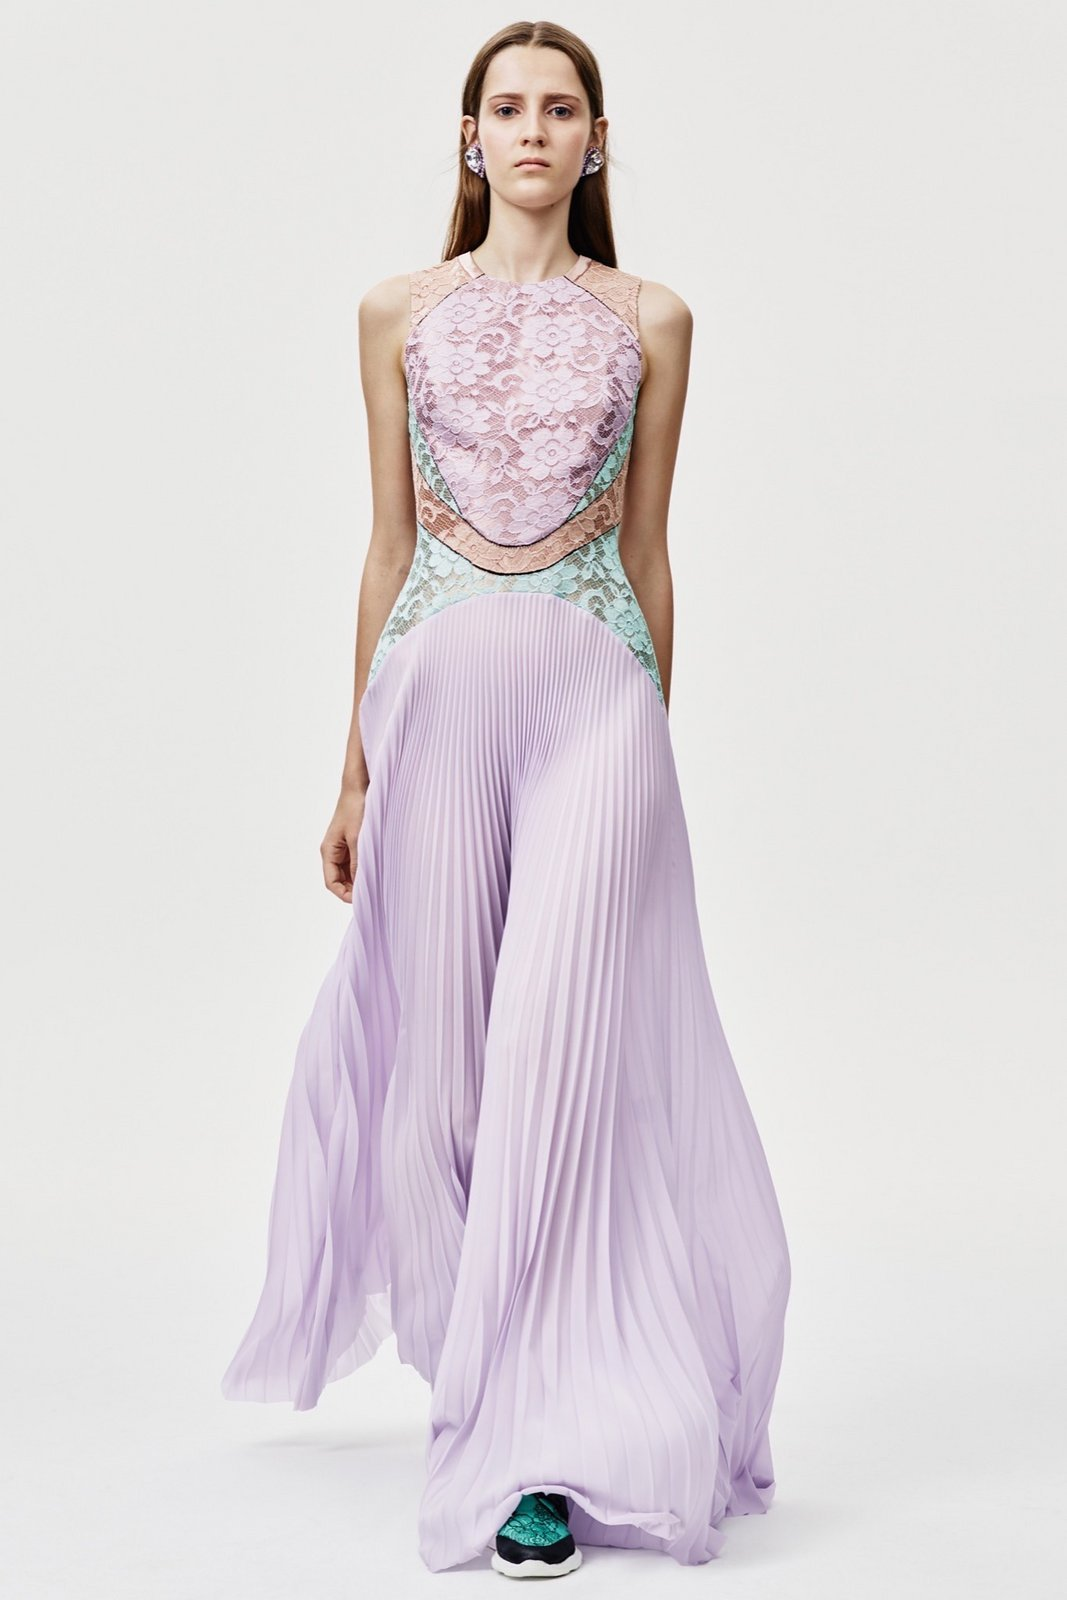 resort-2016-runway-trends-02-pleats-05.jpeg